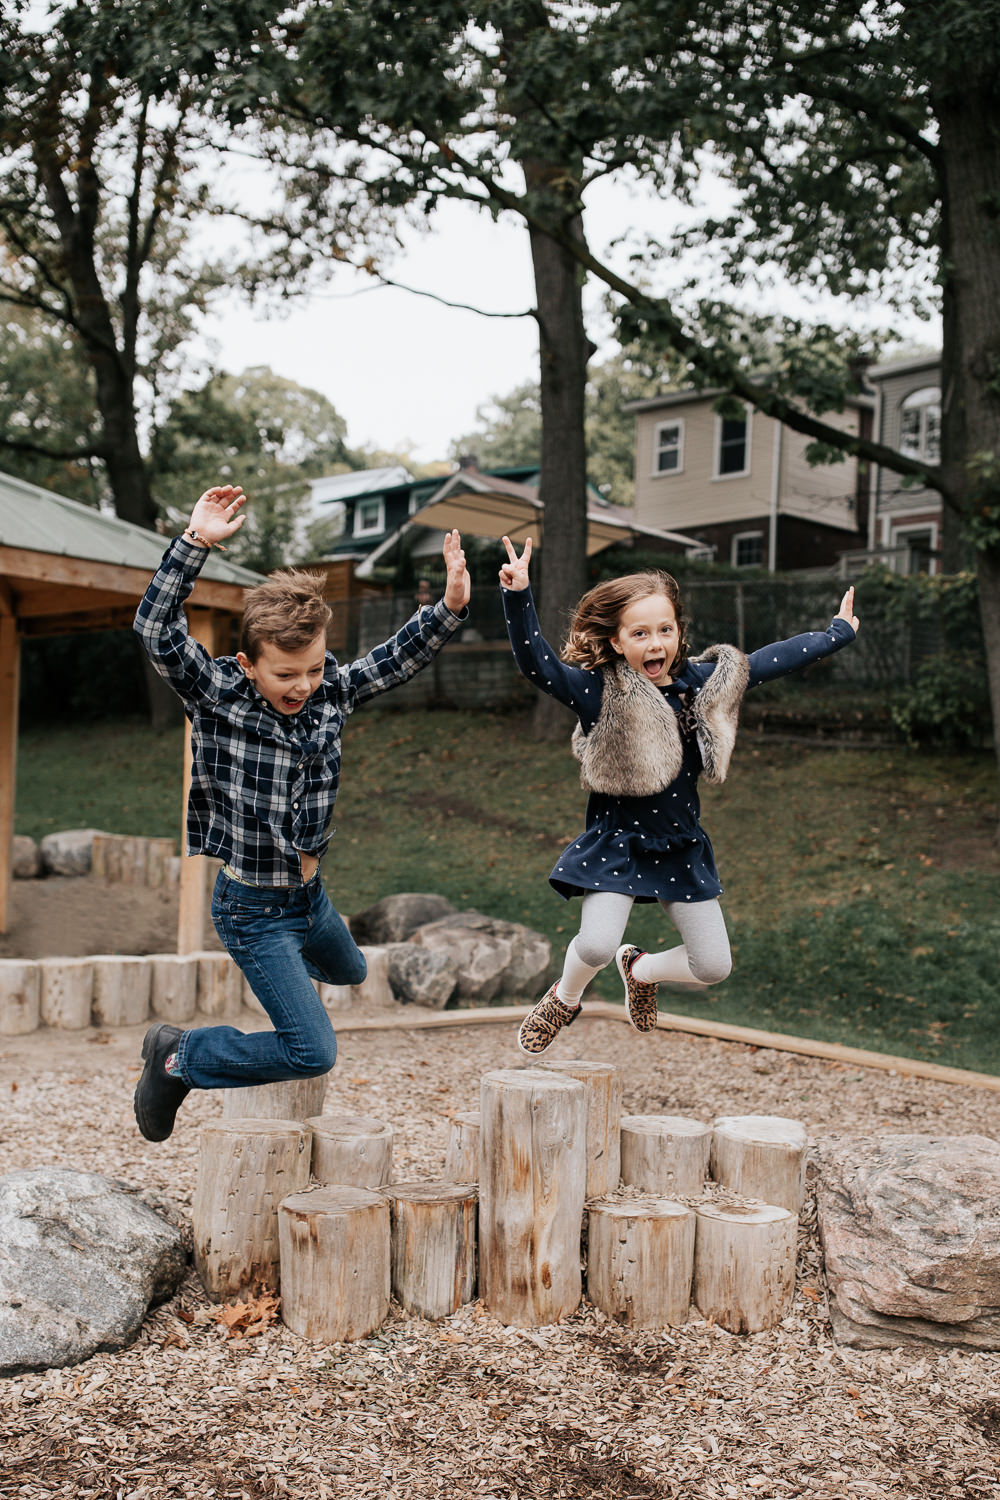 7 year old girl and 9 year old boy jumping off tree stumps at park, arms in air, mouths open, smiling, little sister looking at camera - York Region Lifestyle Photos